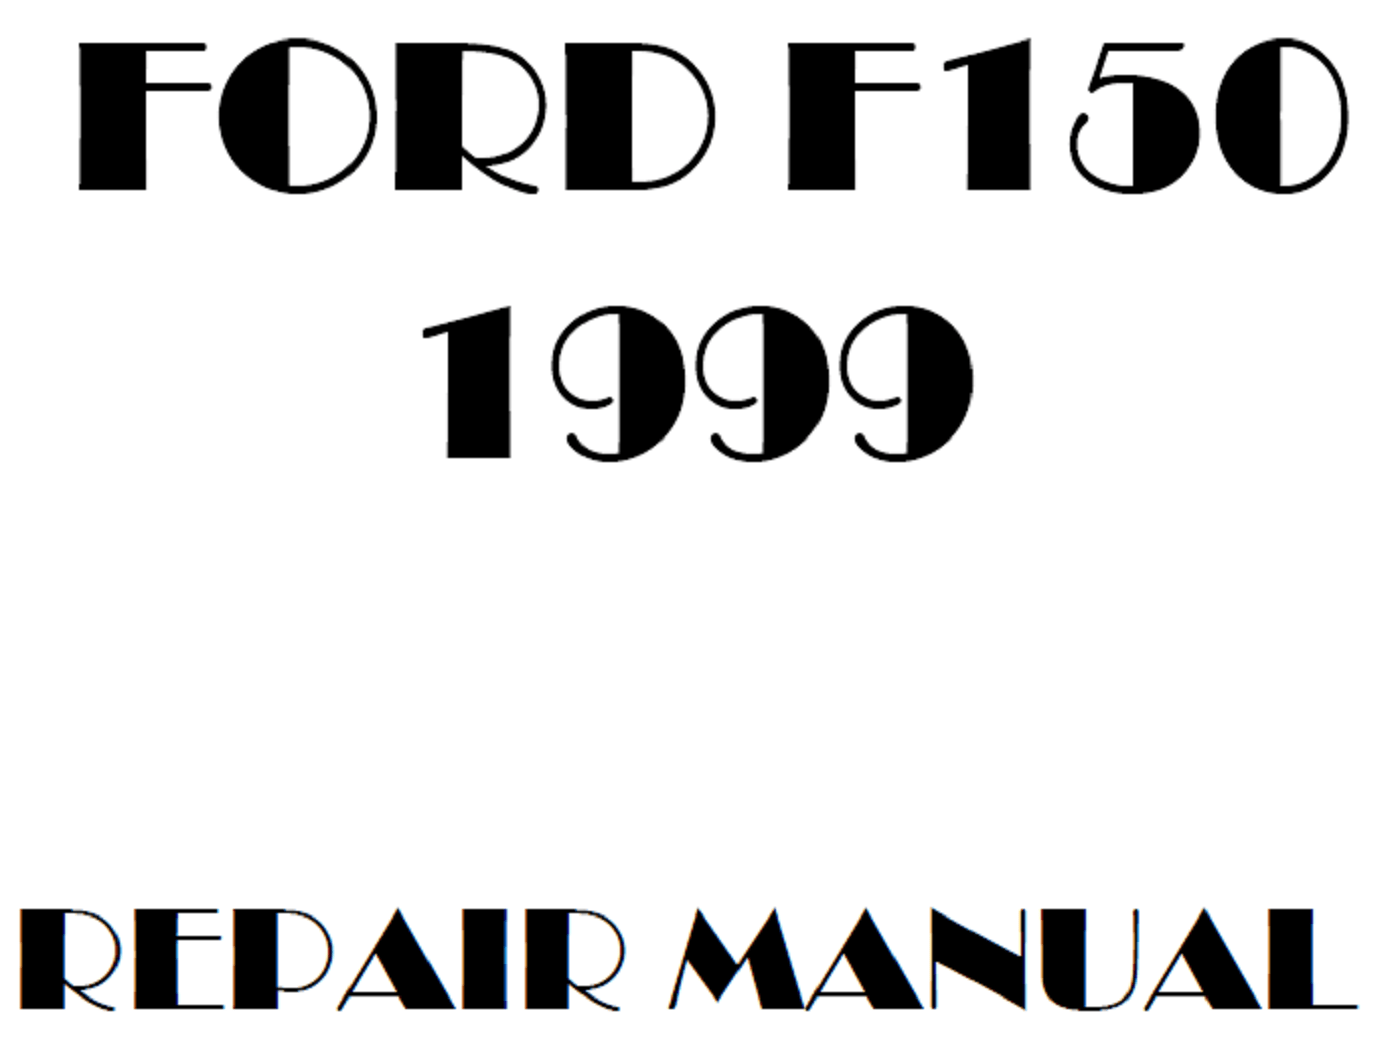 1999 Ford F150 repair manual